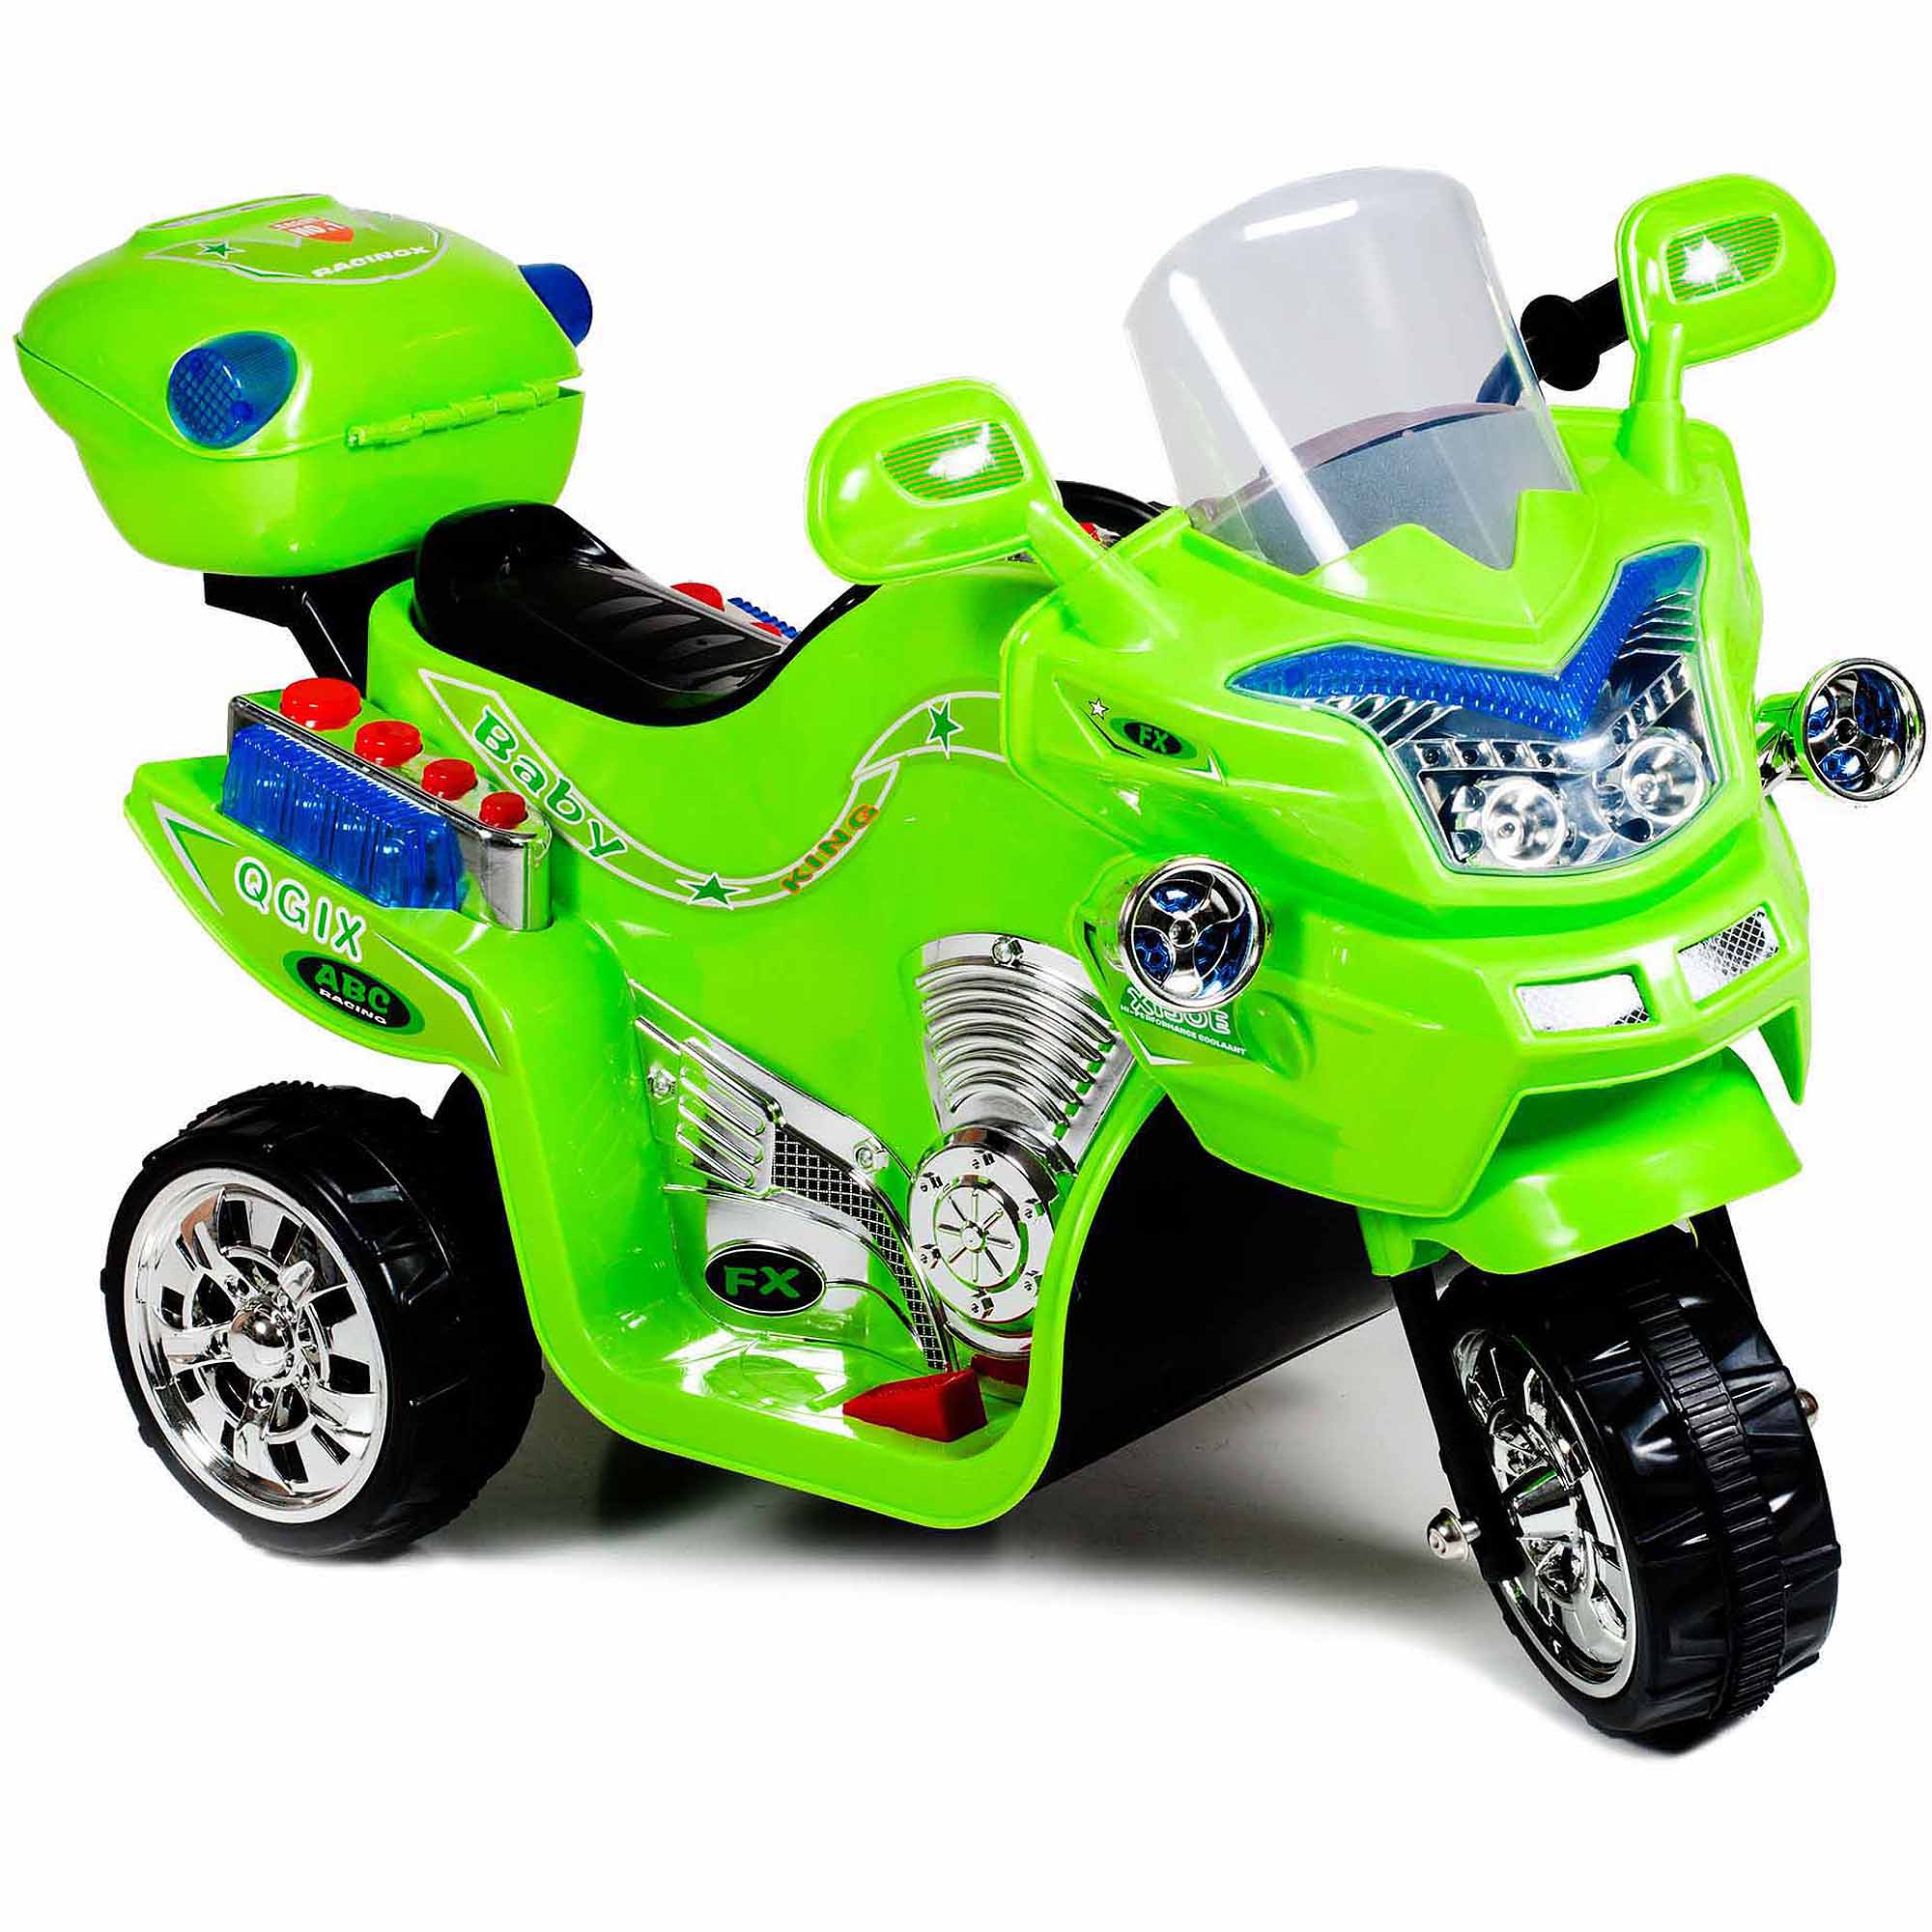 Lil' Rider FX 3-Wheel Battery Powered Bike, Green